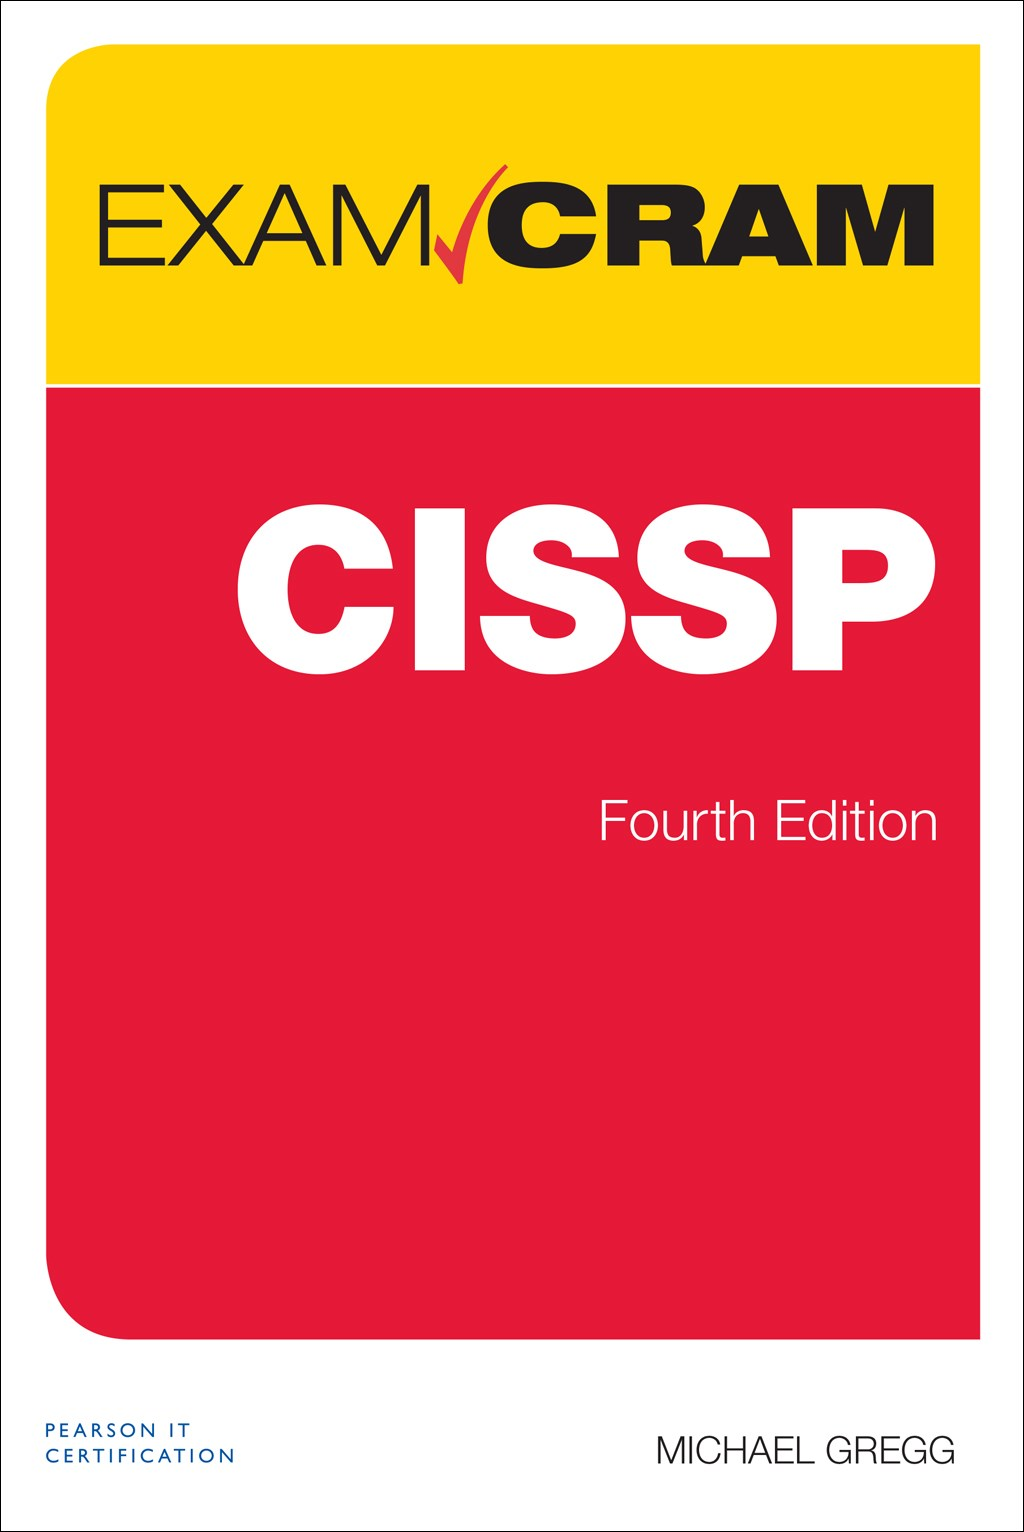 Cissp exam cram 4th edition pearson it certification cissp exam cram 4th edition fandeluxe Image collections